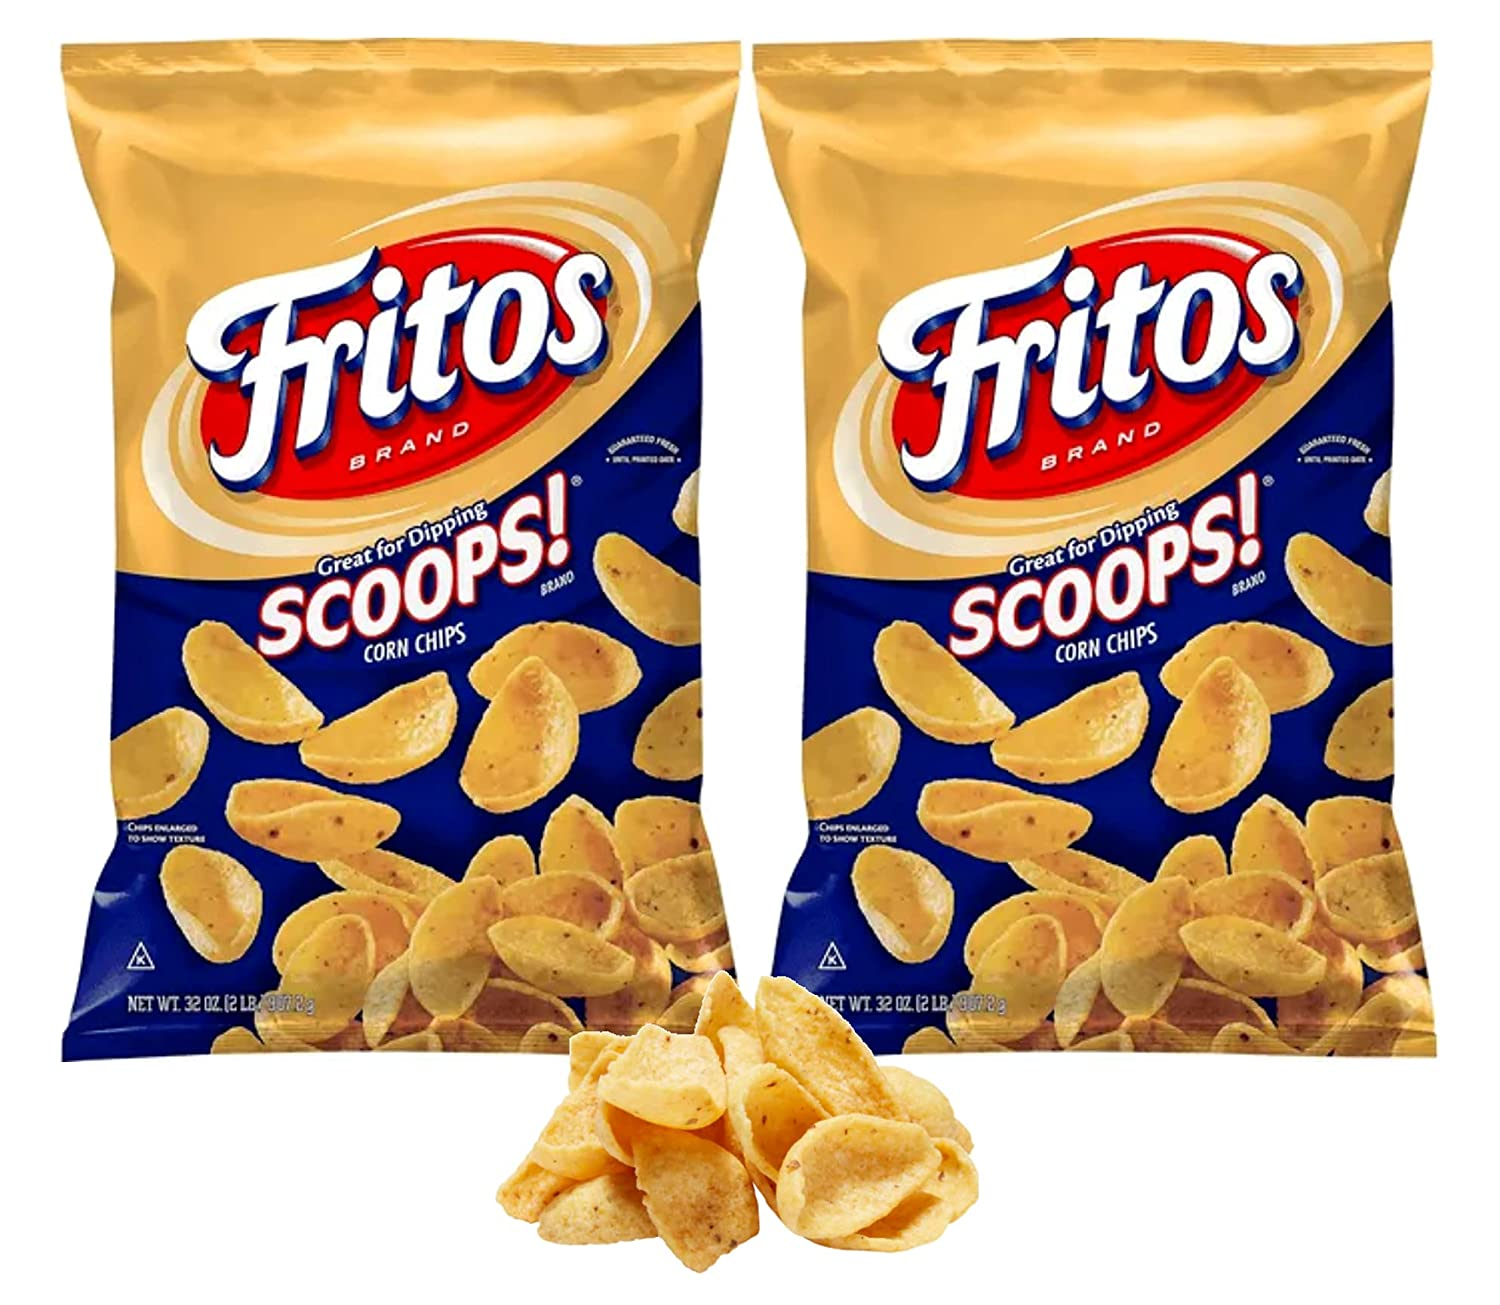 Fritos-Scoops Corn Chips 35% OFF Dippers Big Party - Pk Bag 2 67% OFF of fixed price 4 lb